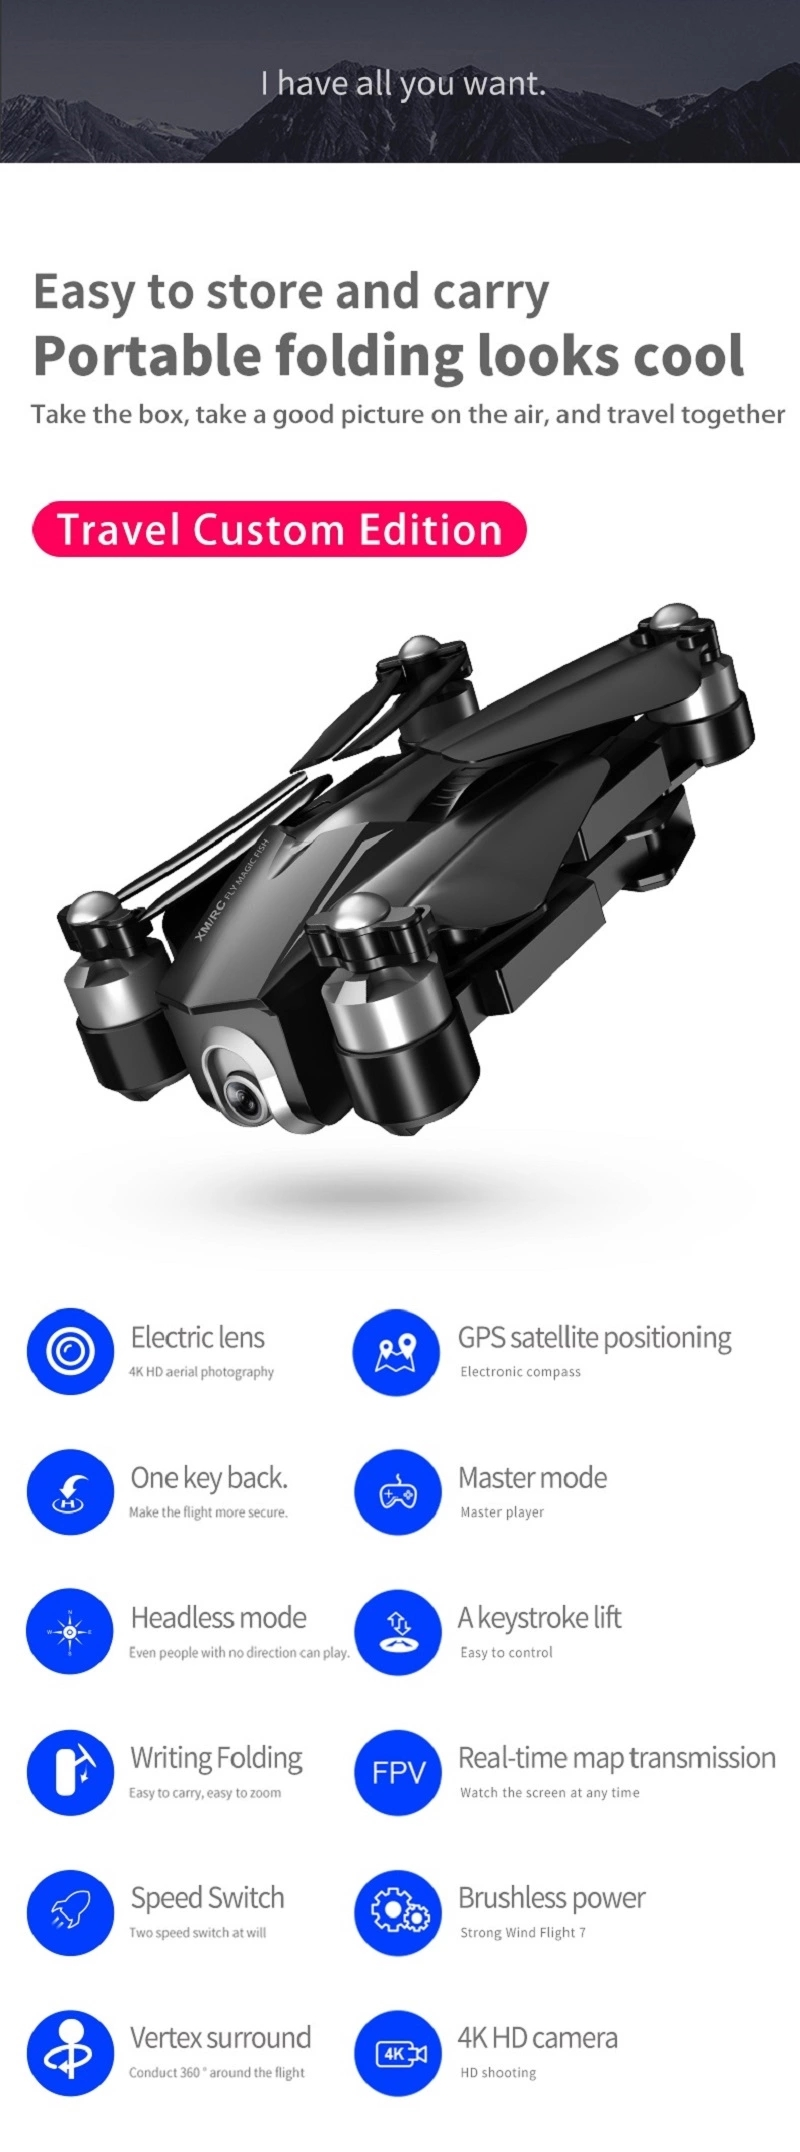 New 2019 SJY-M8 Brushless Drone Quadcopter GPS 4K Camera Flying Time 28 mins And Distance 850 Meters